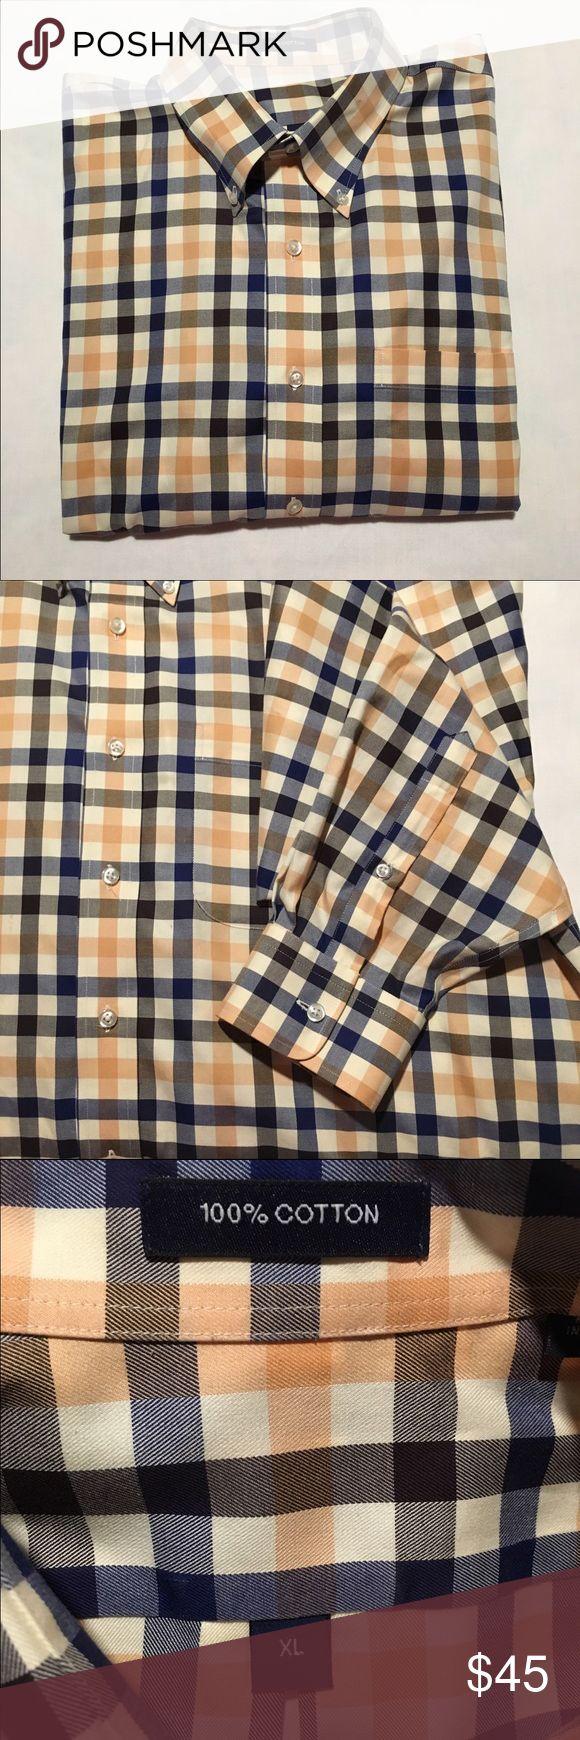 25 best ideas about men 39 s plaid shirts on pinterest men for Nice mens button up shirts